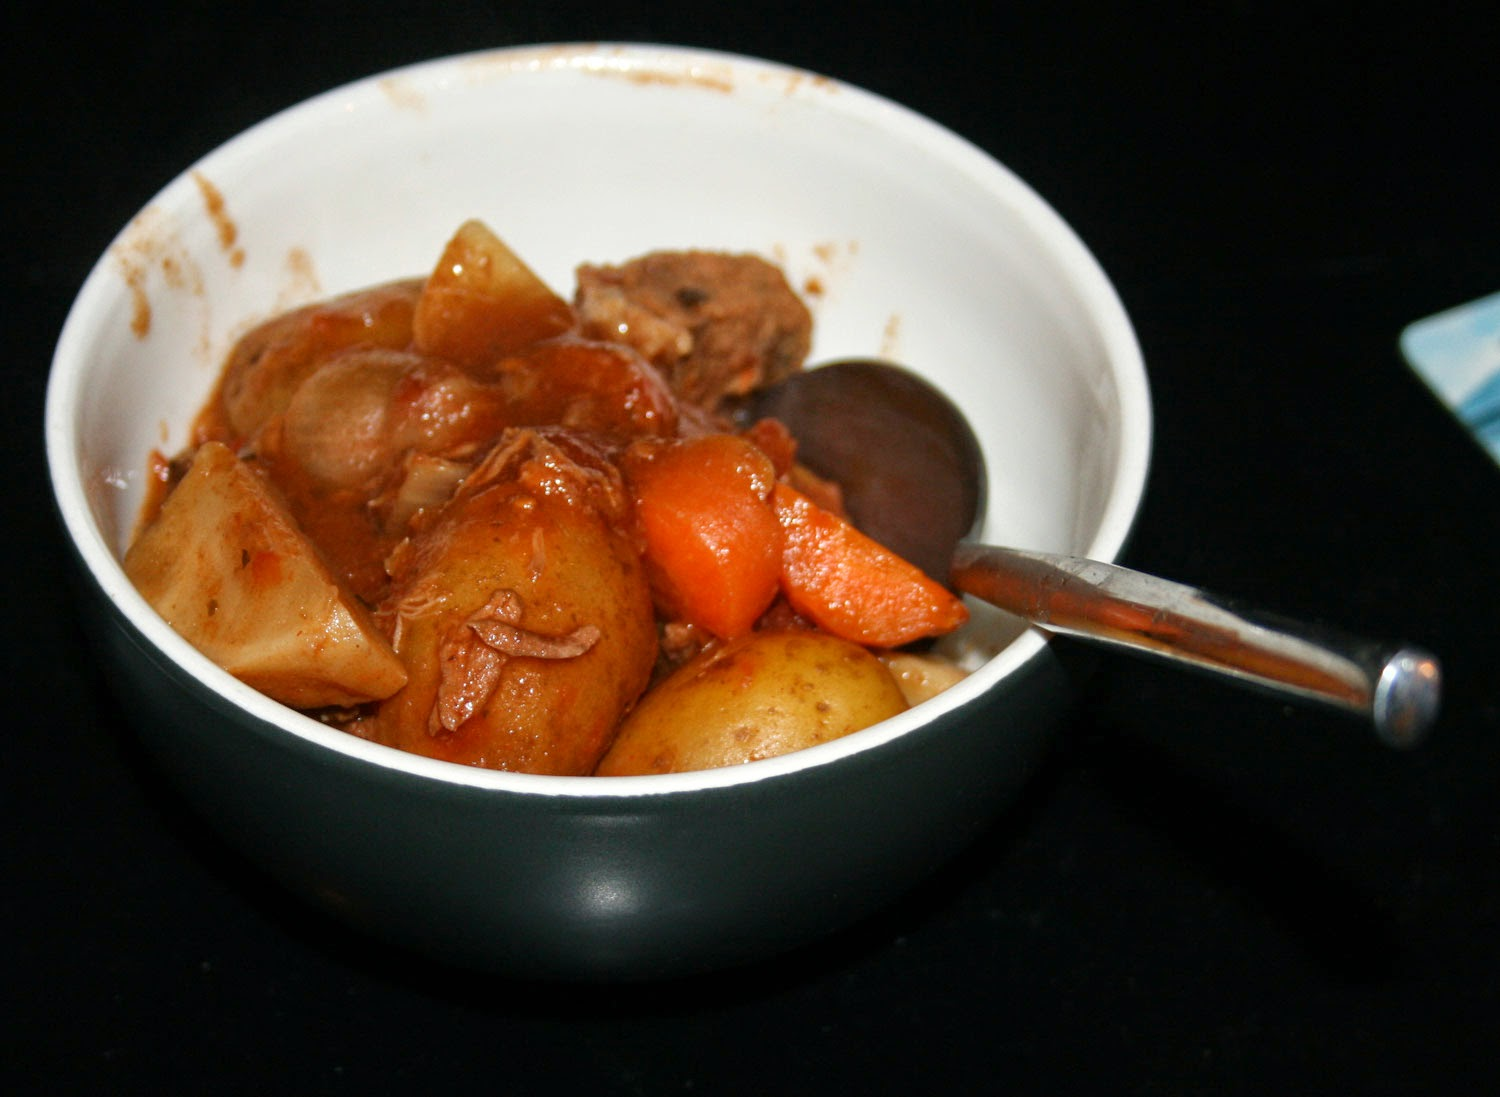 A lovely bowl of stew